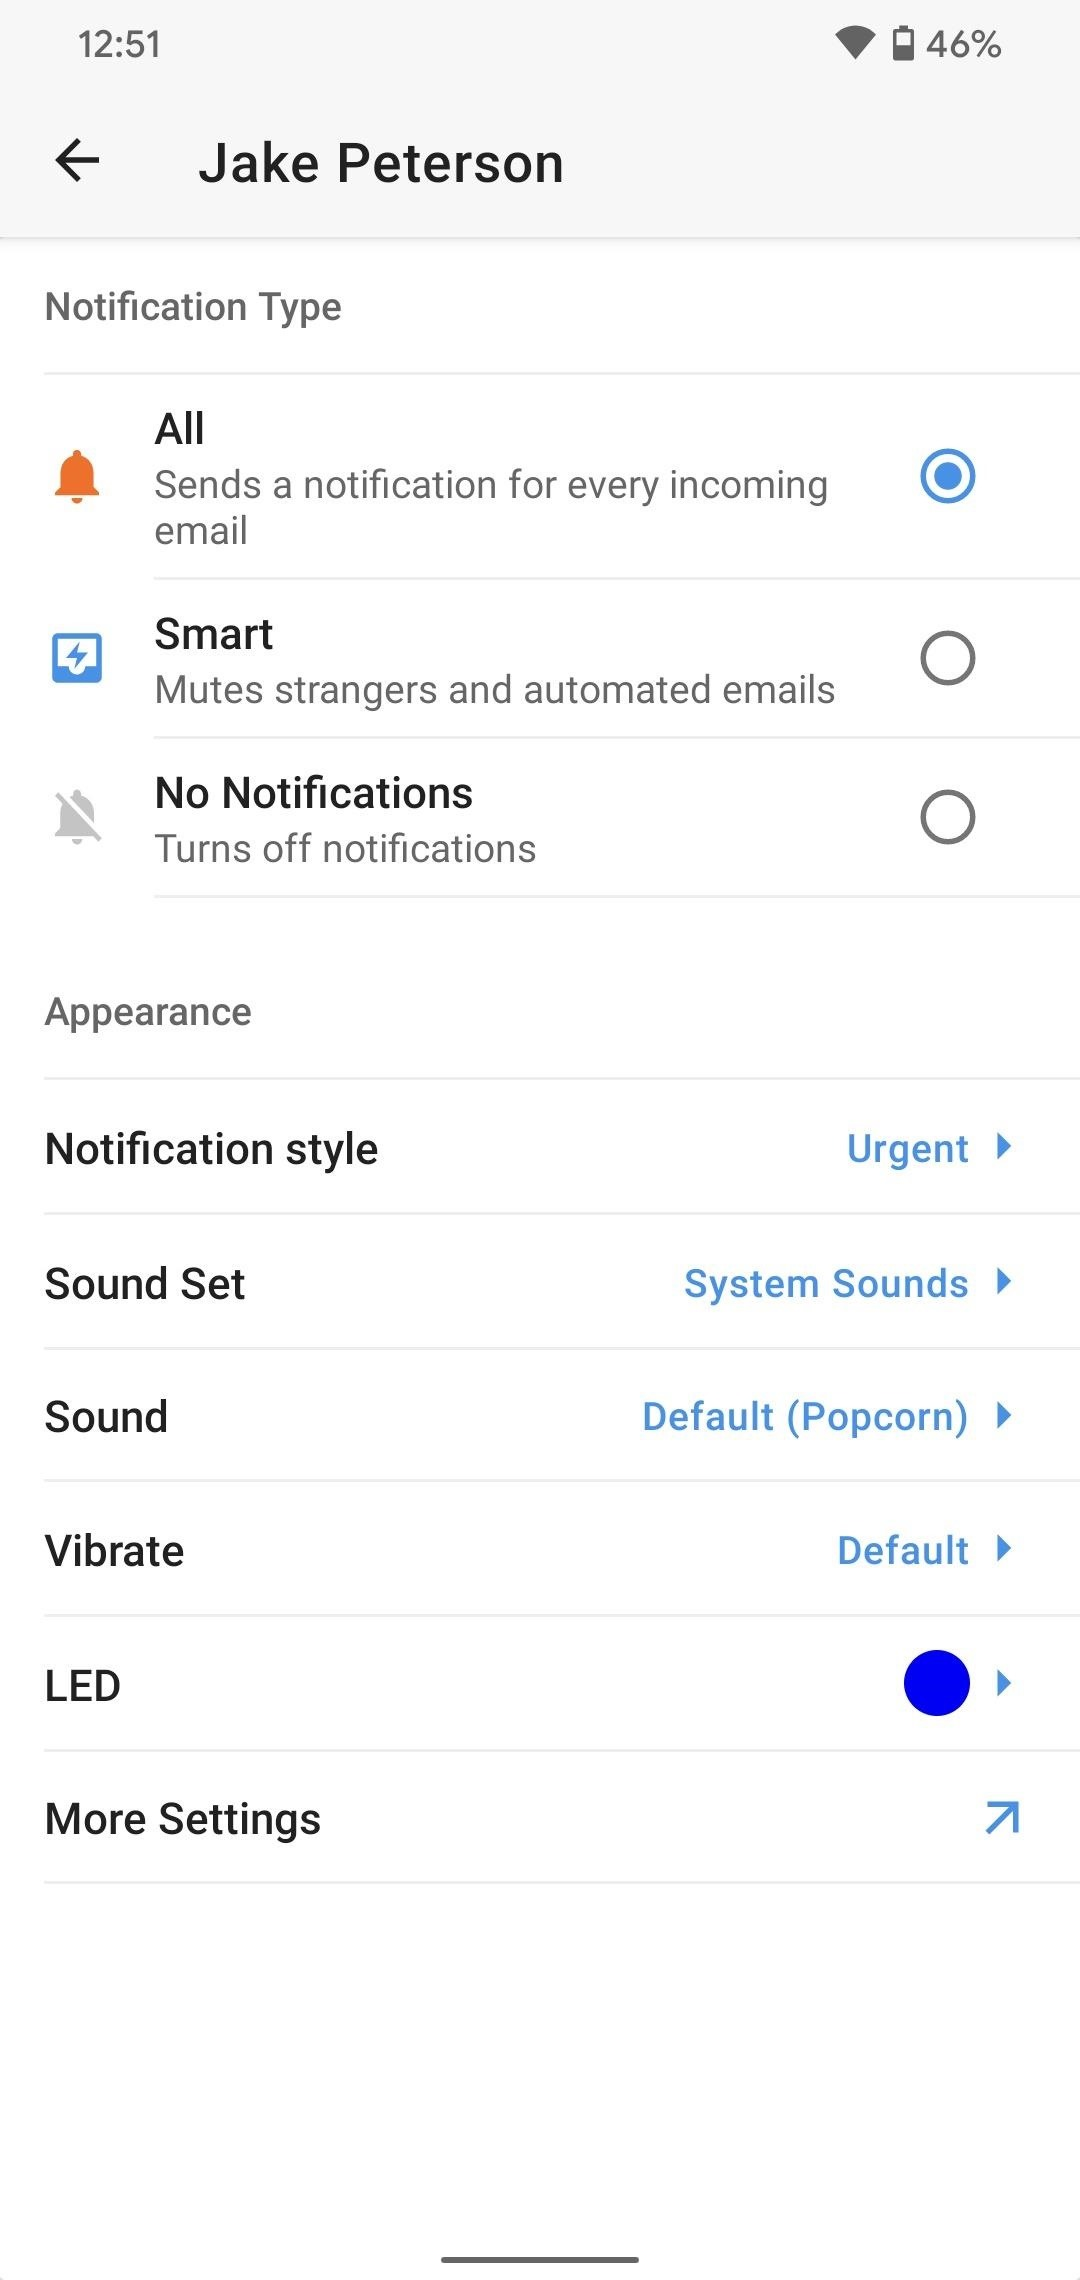 Customize Spark for Android Notifications with Lights, Sounds & Vibrations